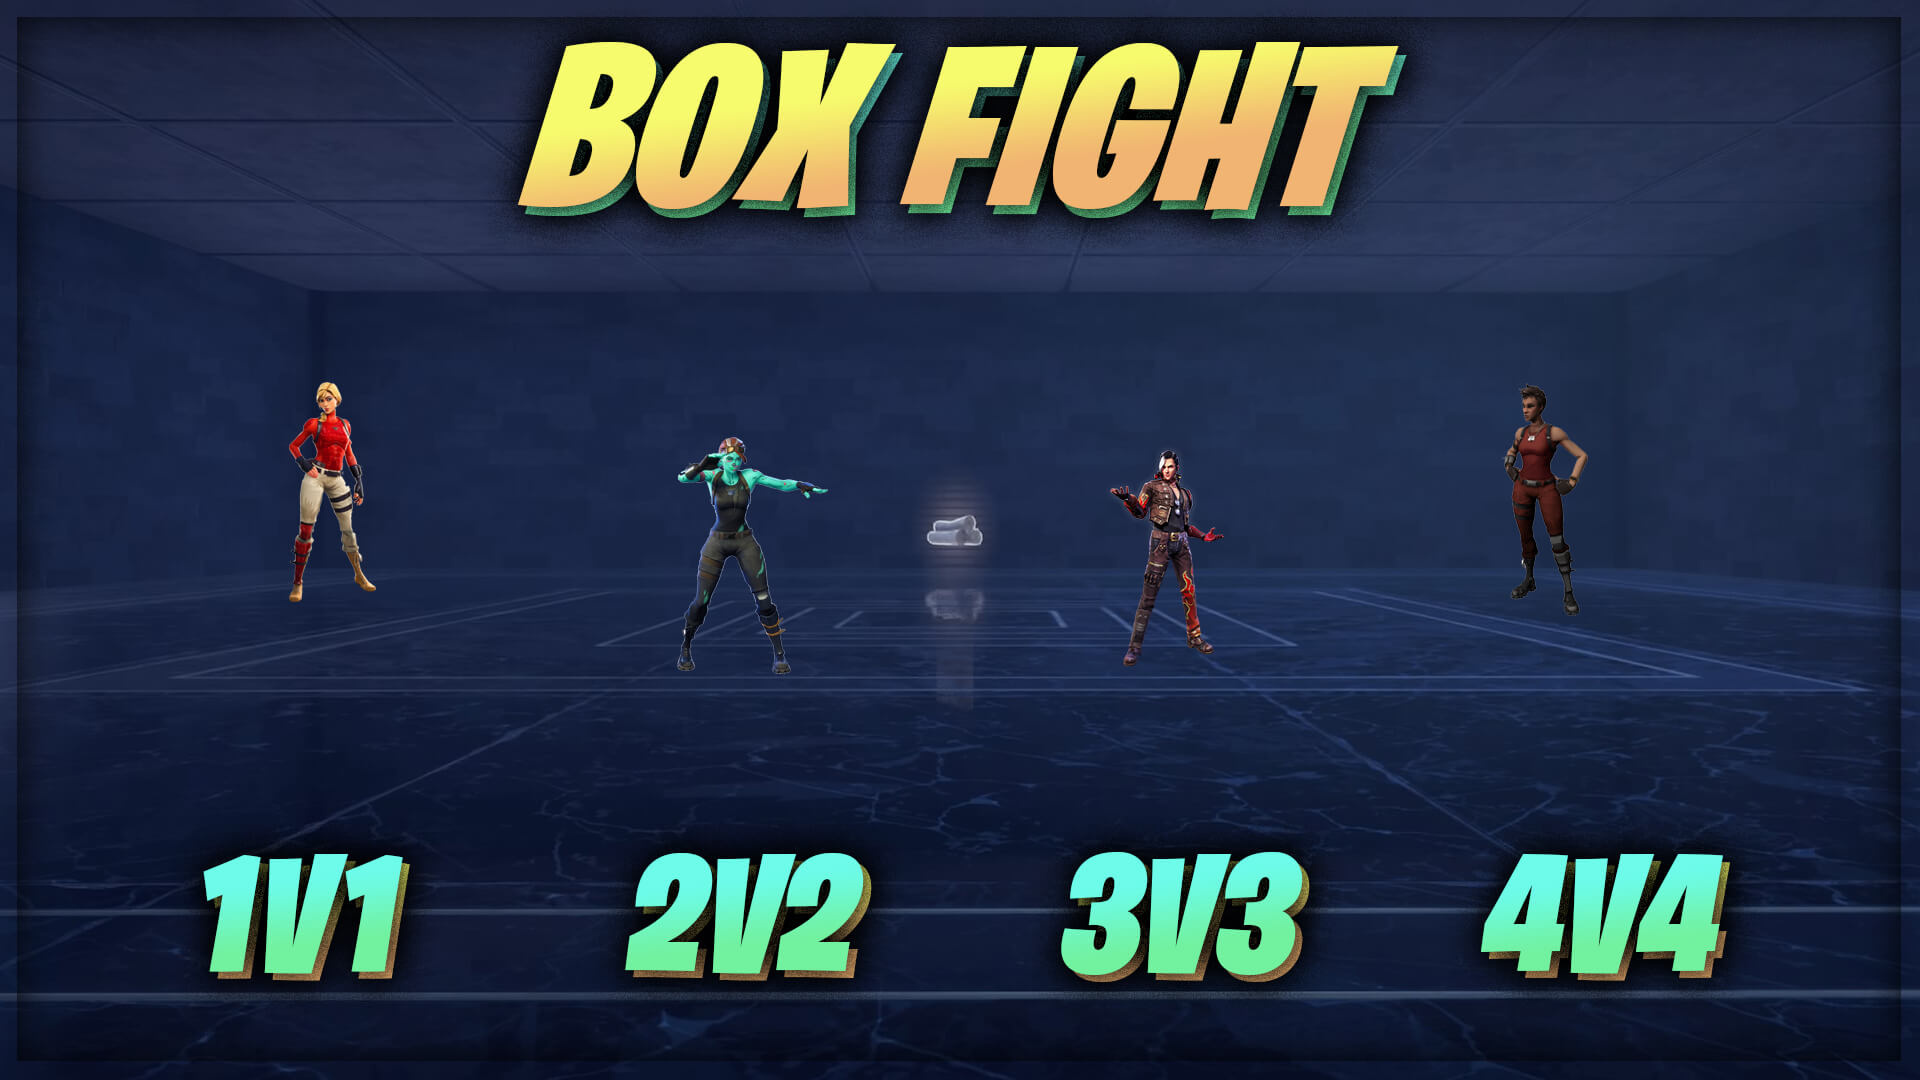 BOX FIGHT [1V1-4V4] [1V1V1V1]